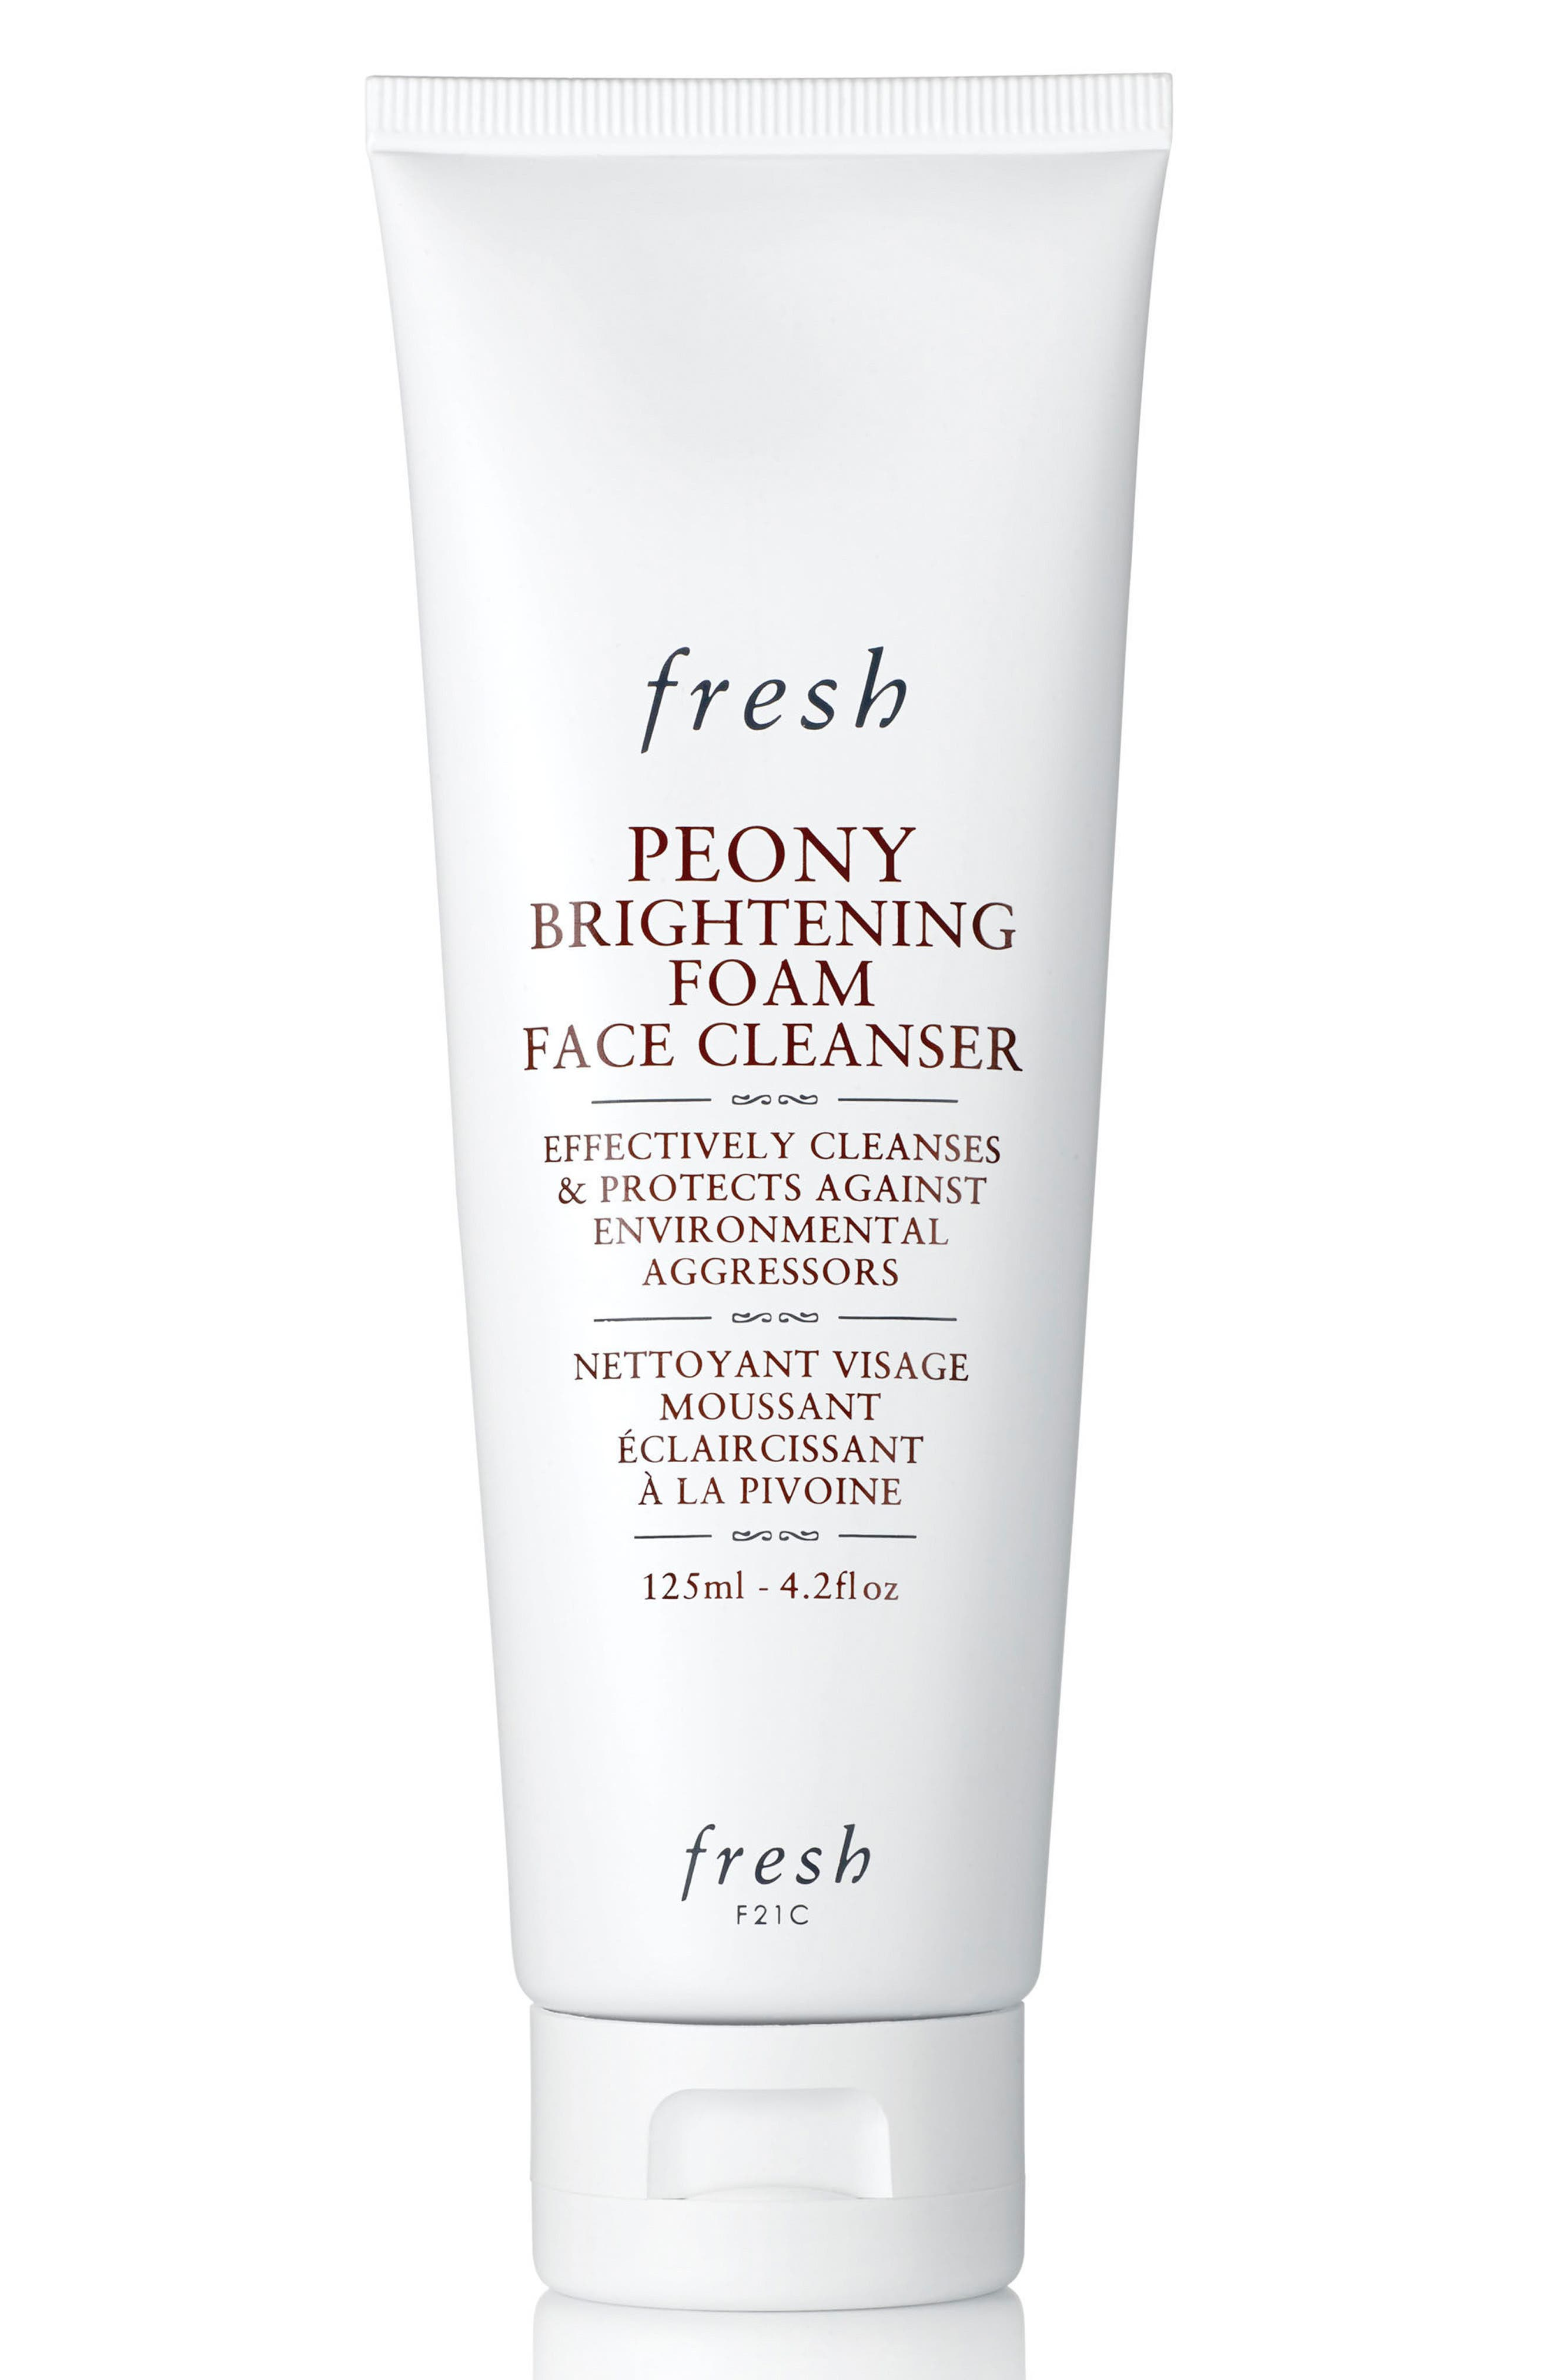 Fresh® Peony Brightening Foam Face Cleanser